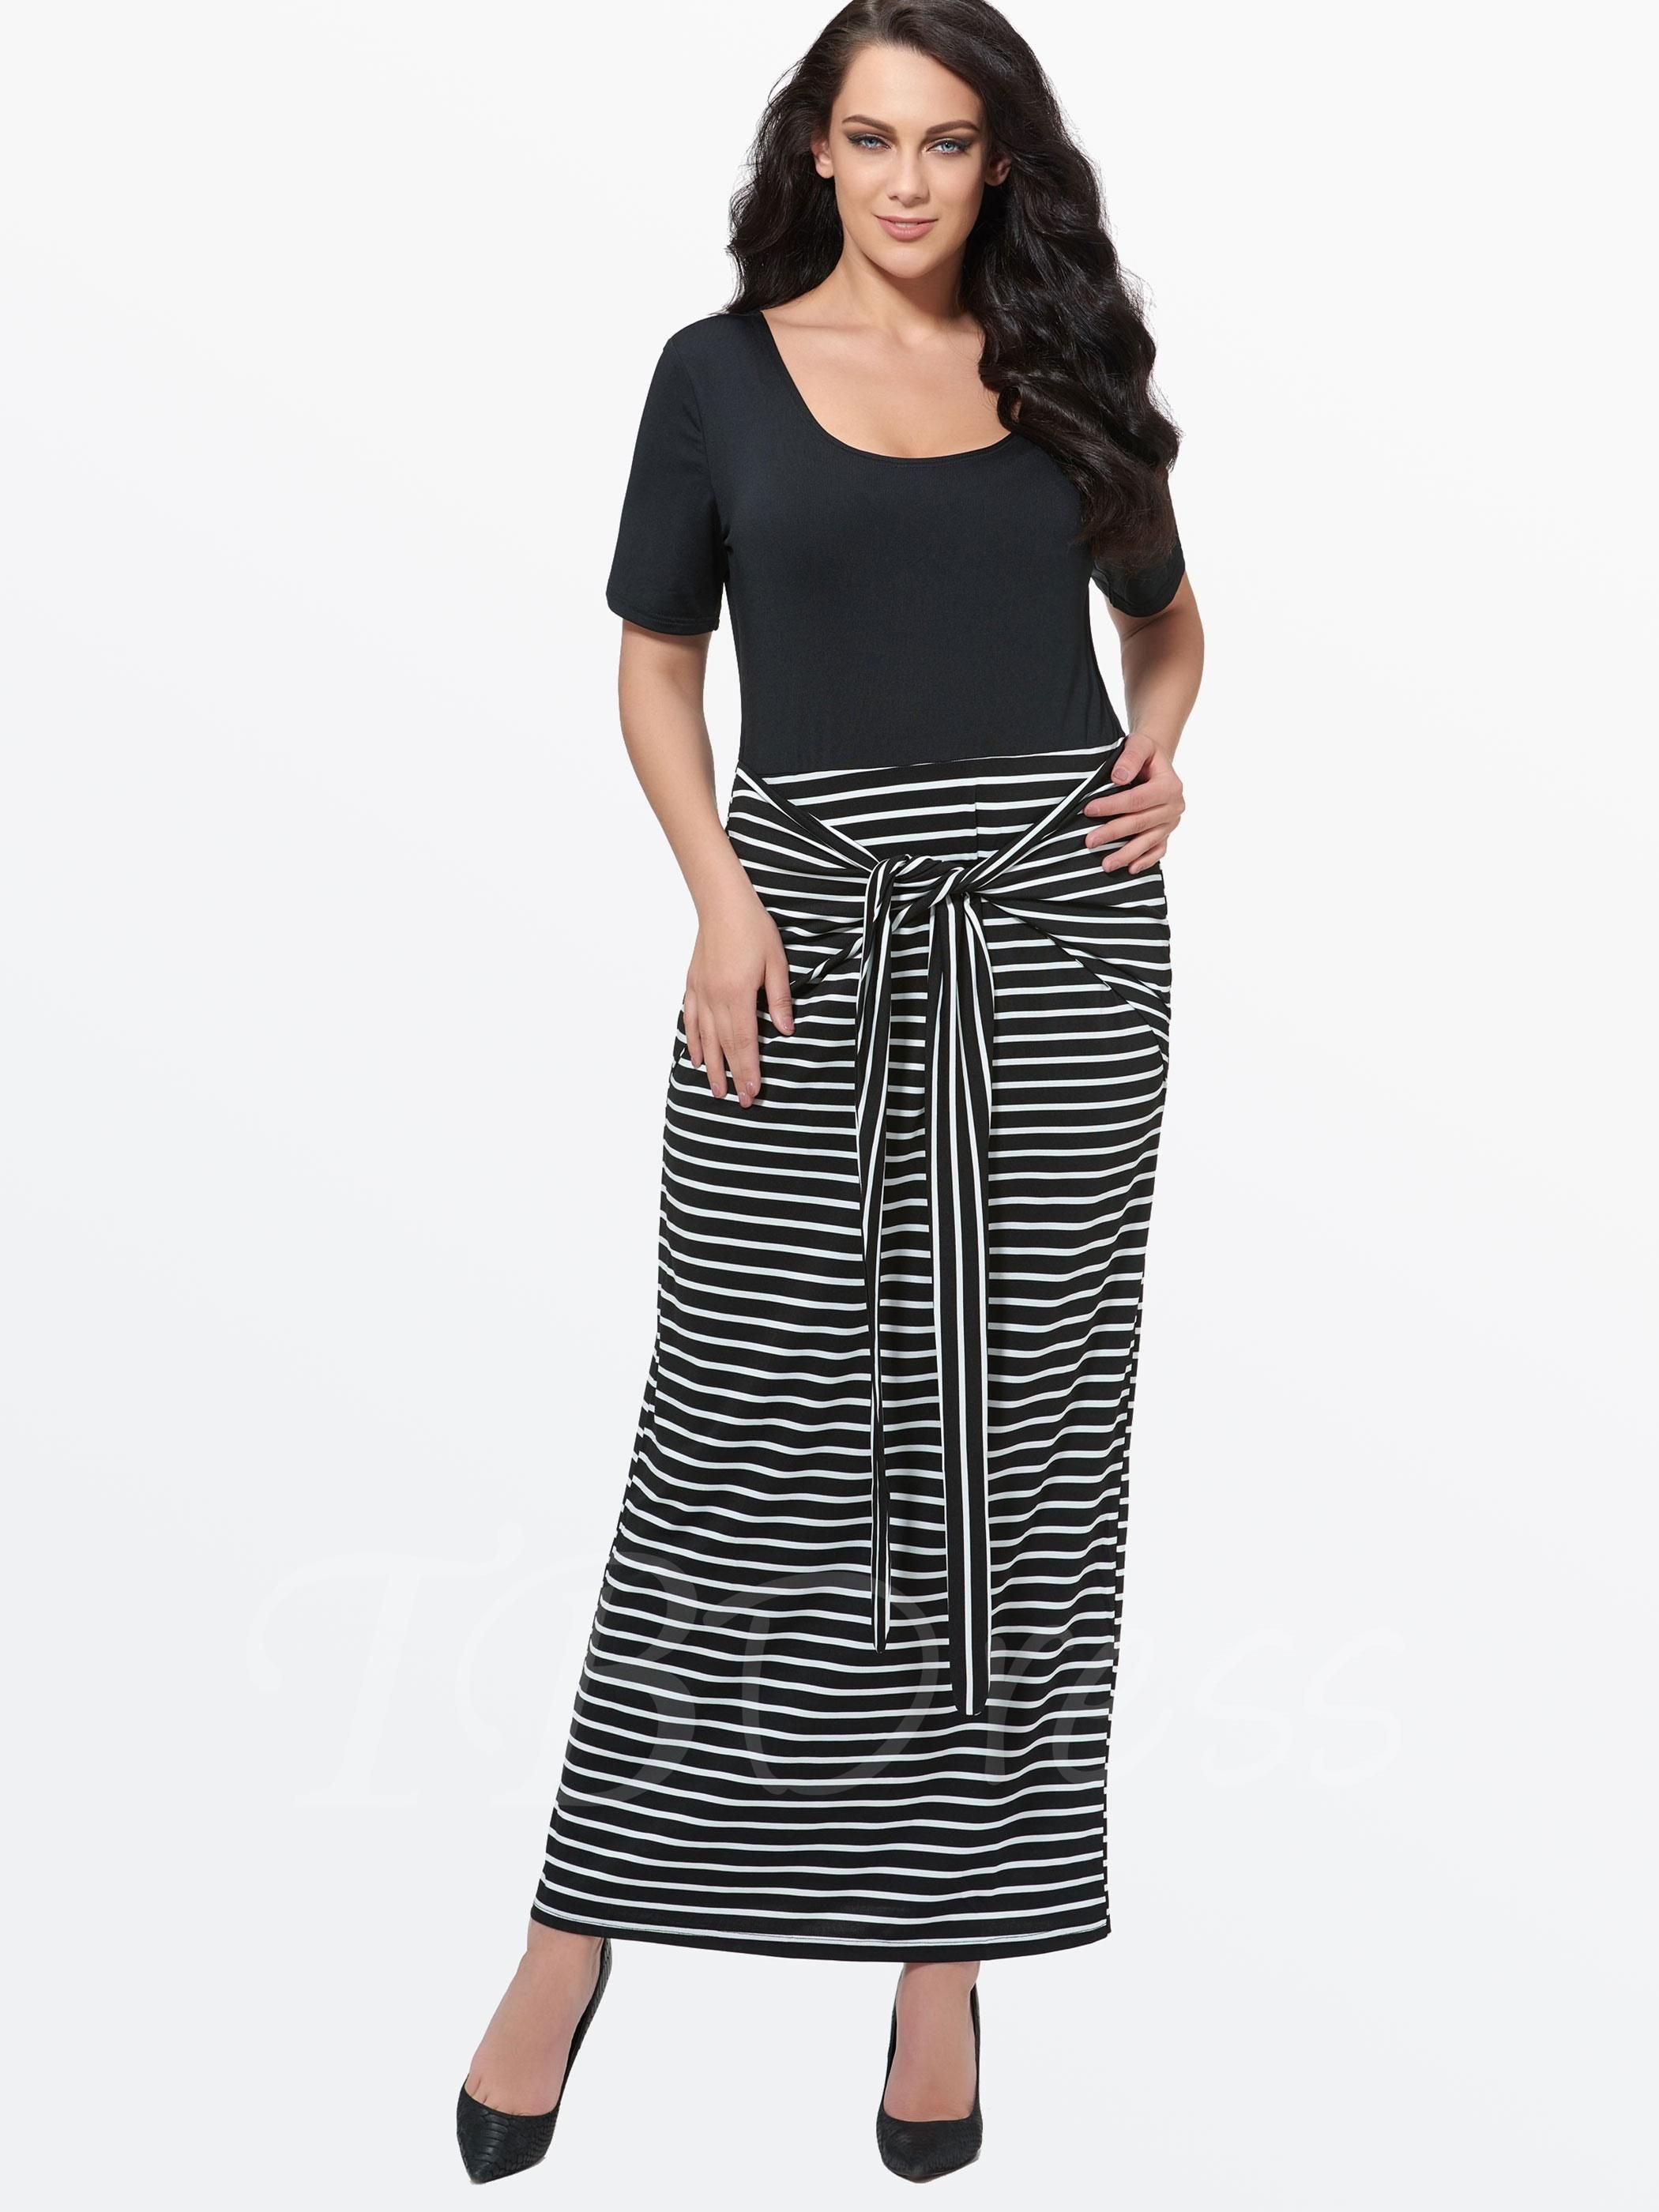 Tbdress tbdress plus size stripes womens maxi dress plus size